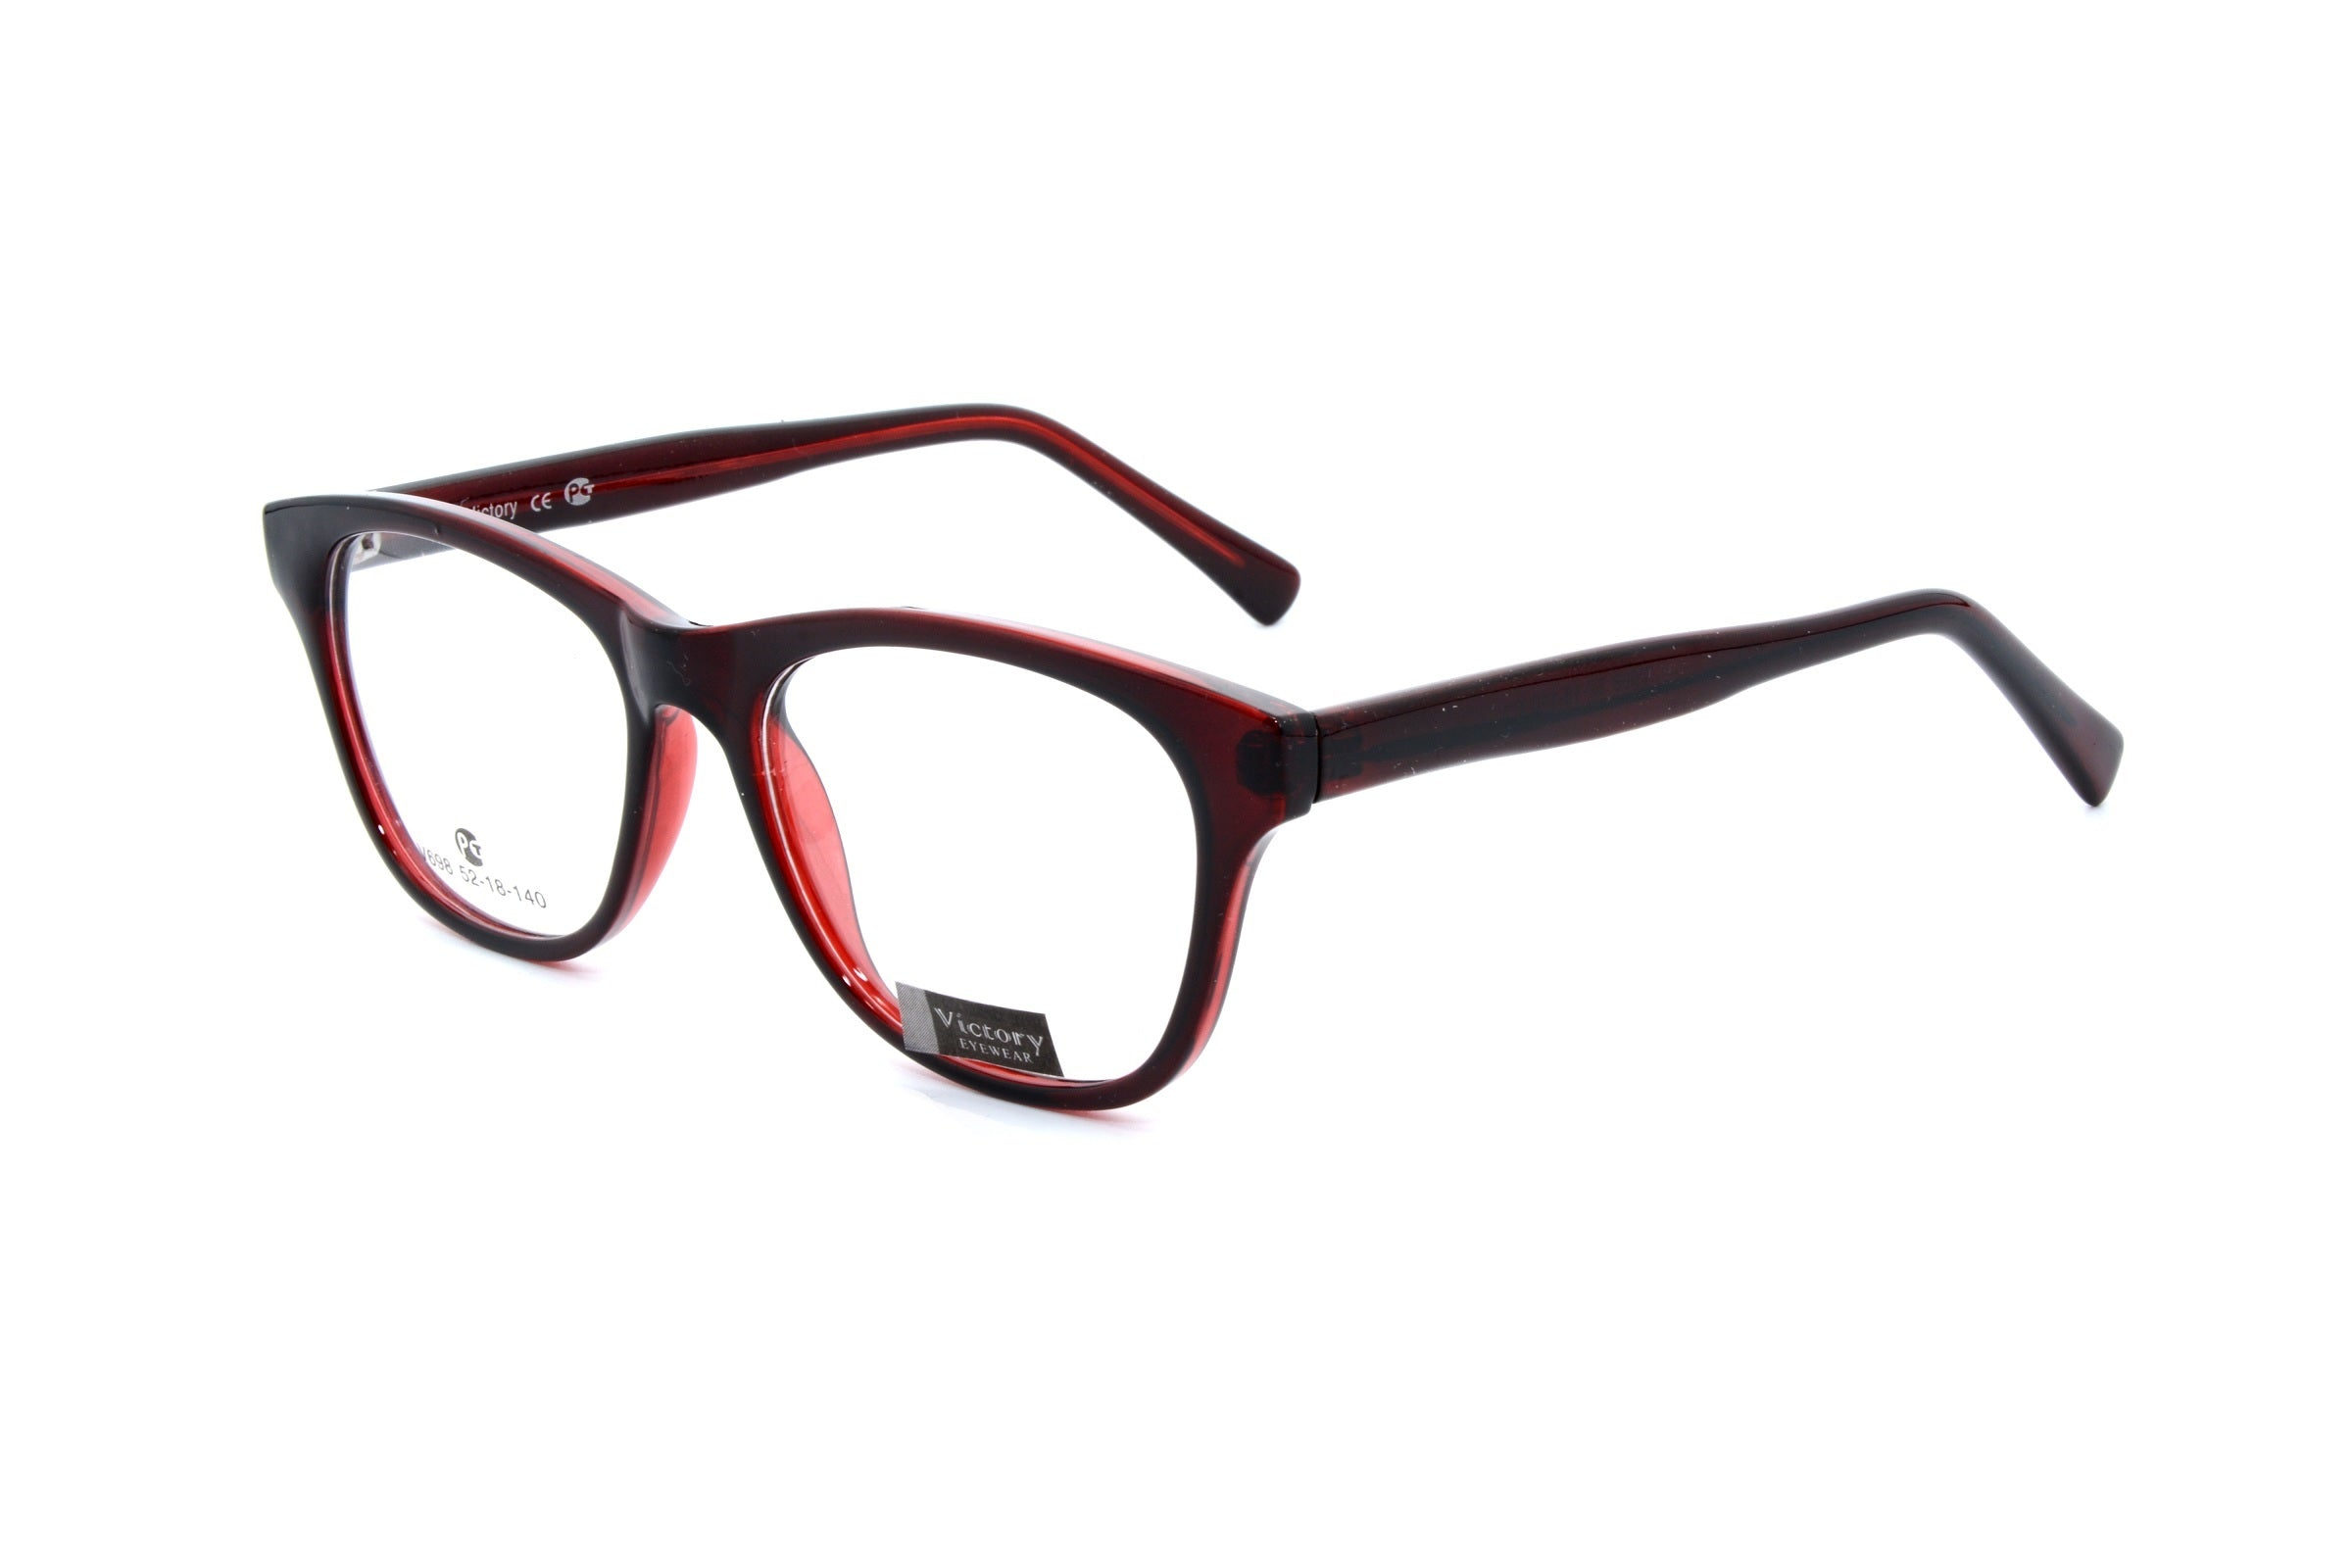 Victory eyewear 698, C2 - Optics Trading